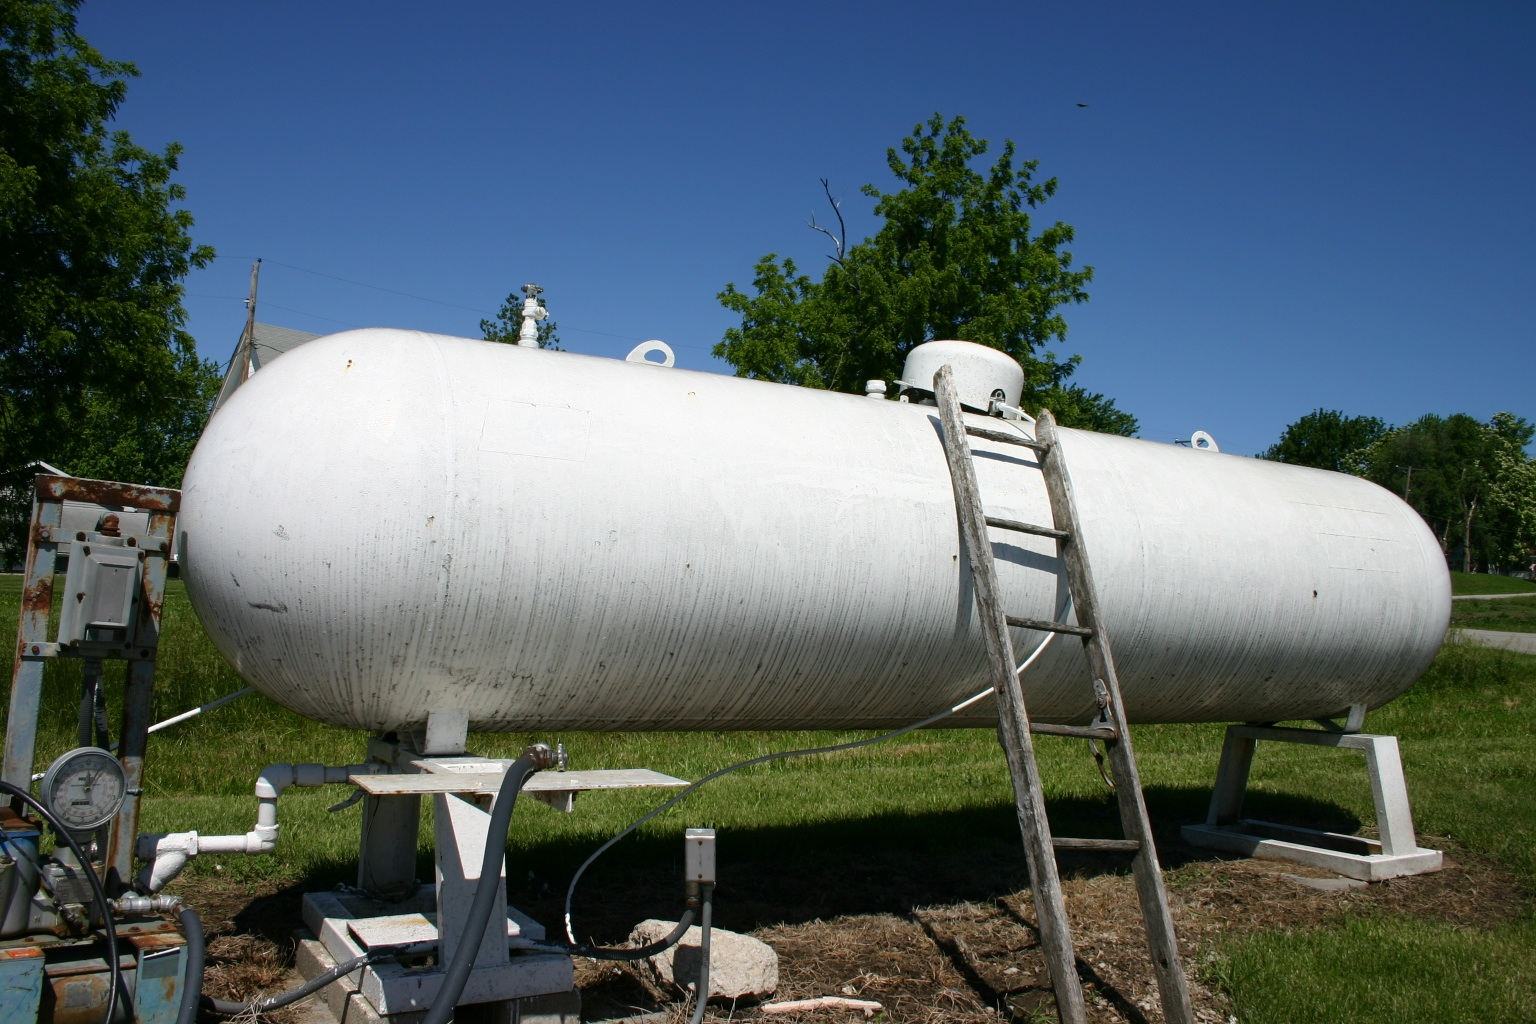 Propane Tank Accident Lawyer